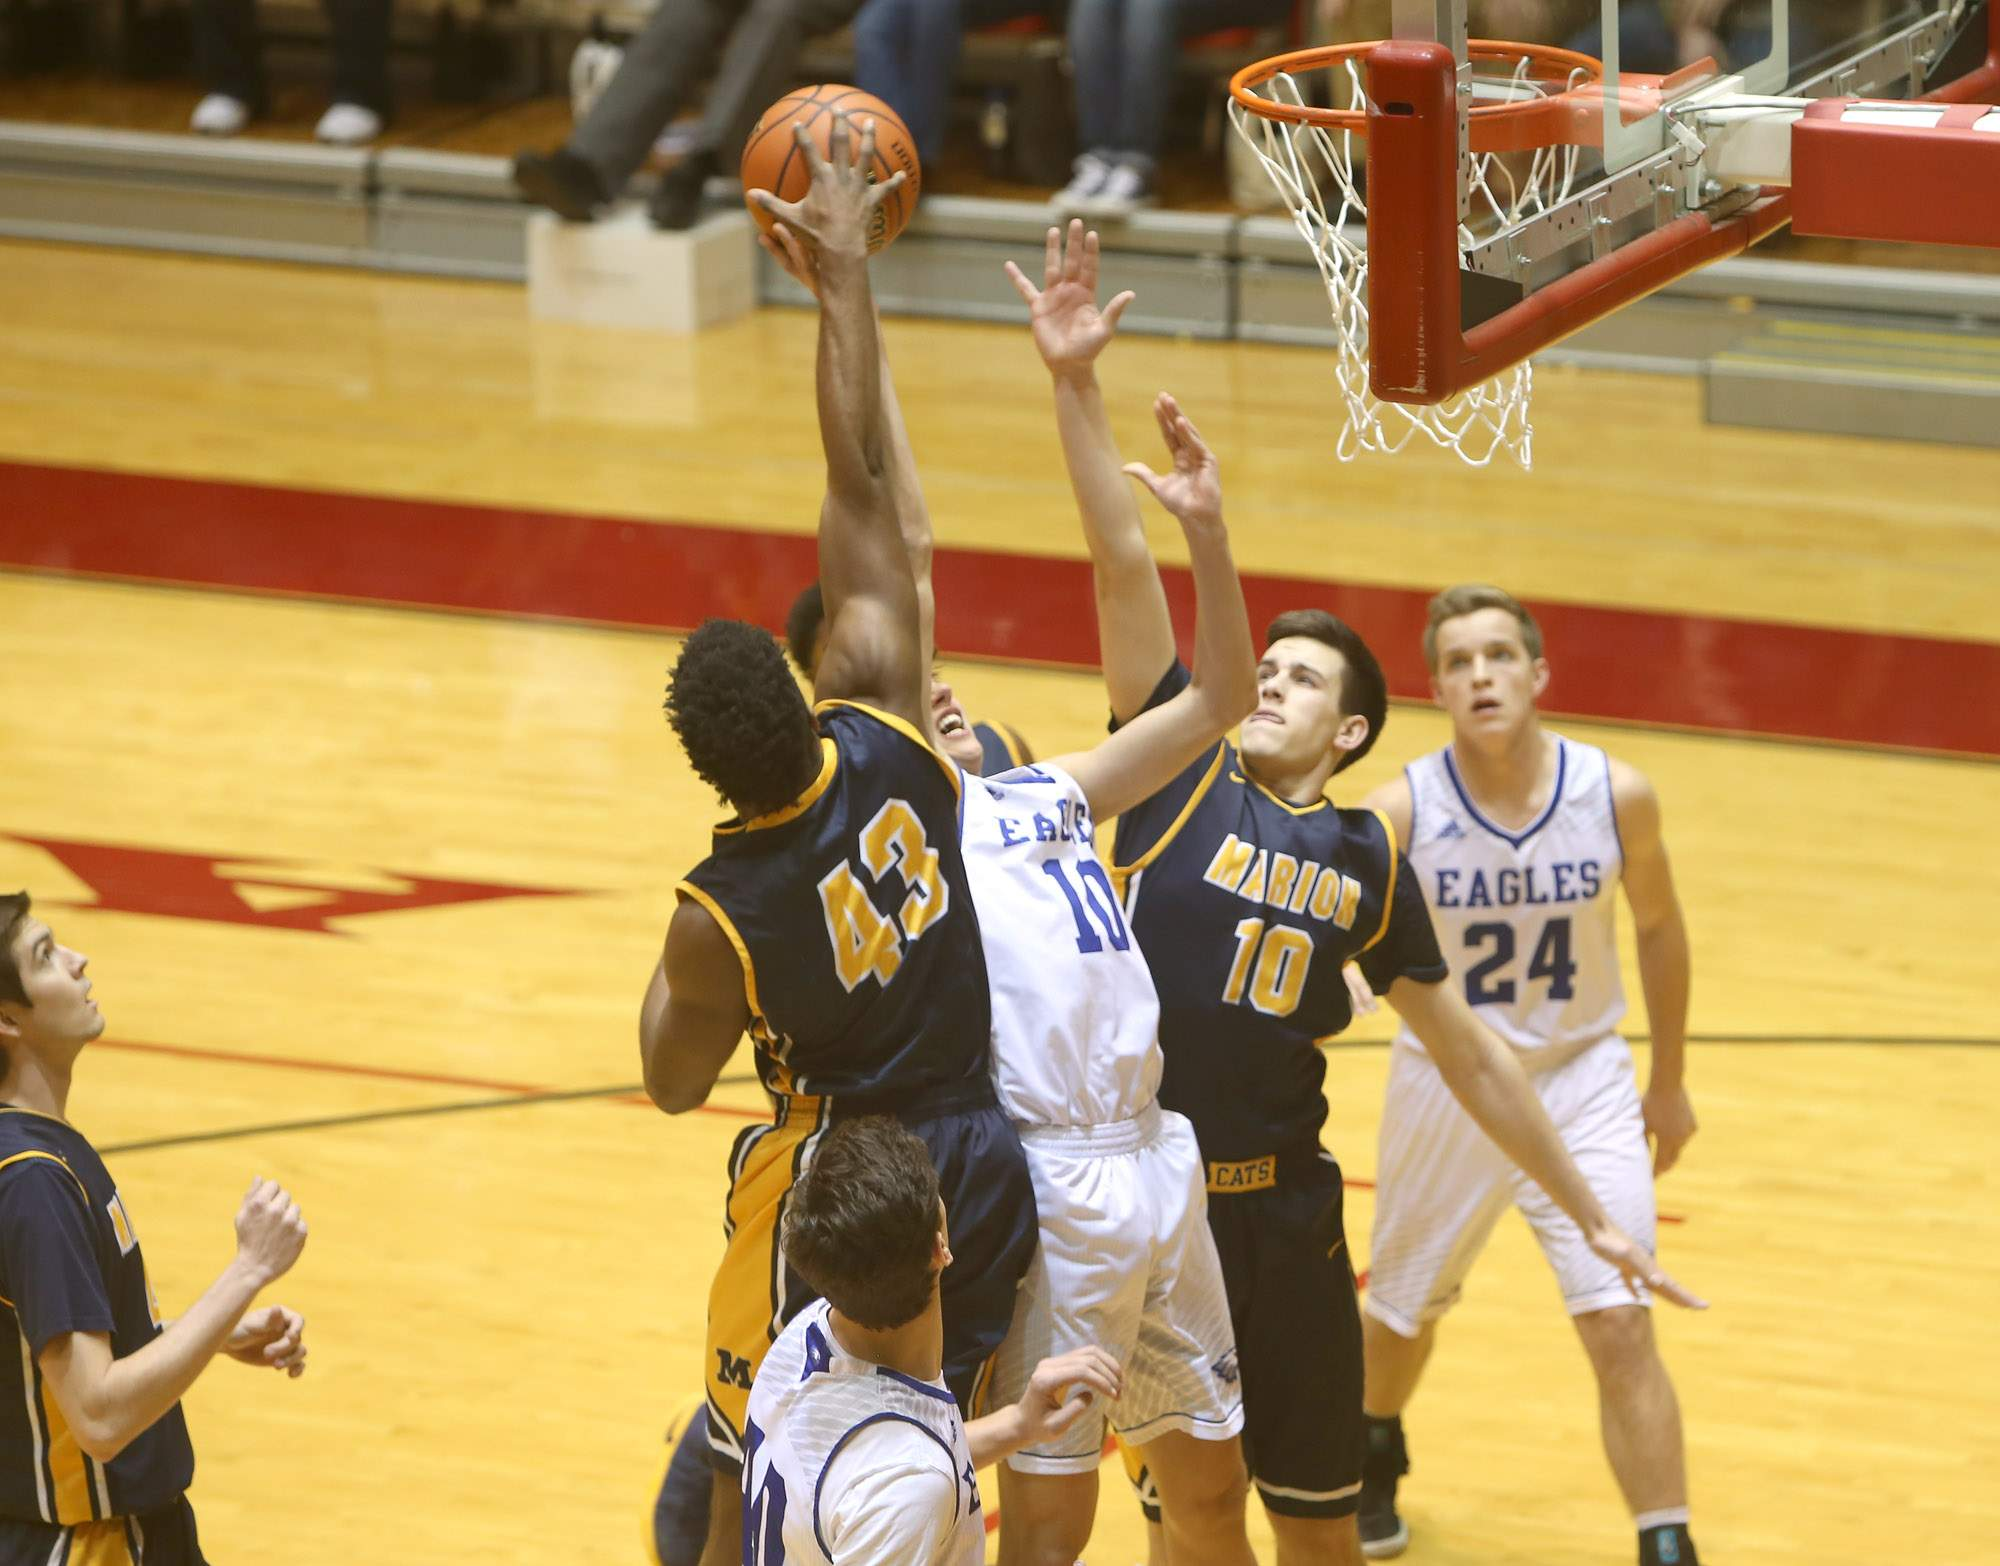 Terrell Henderson blocks a shot.